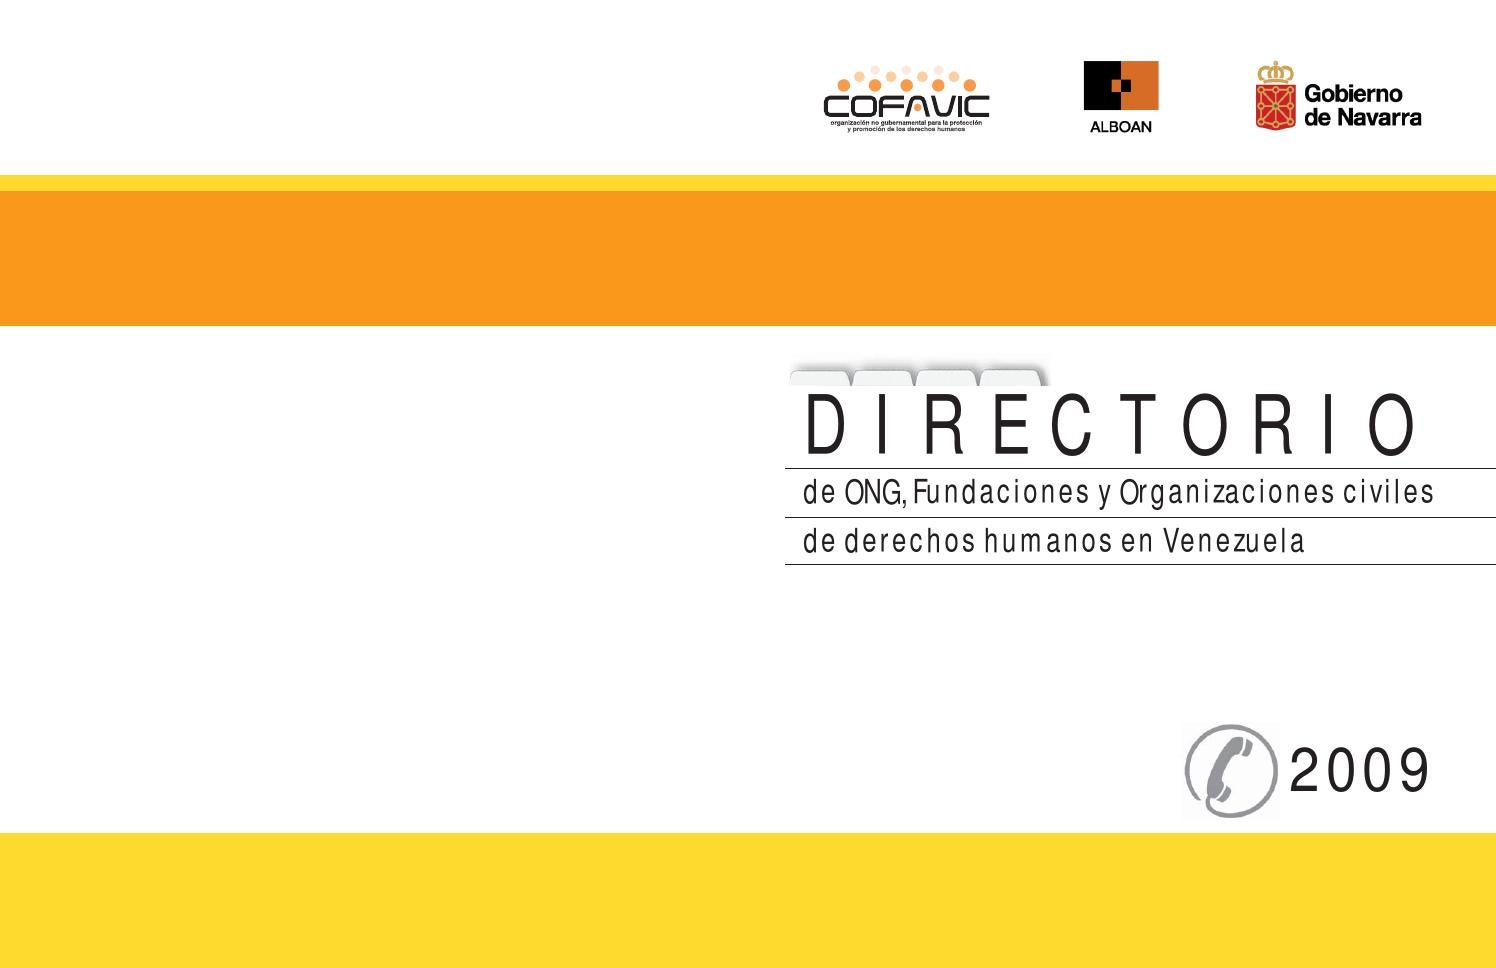 directorio de ong by cofavic issuu